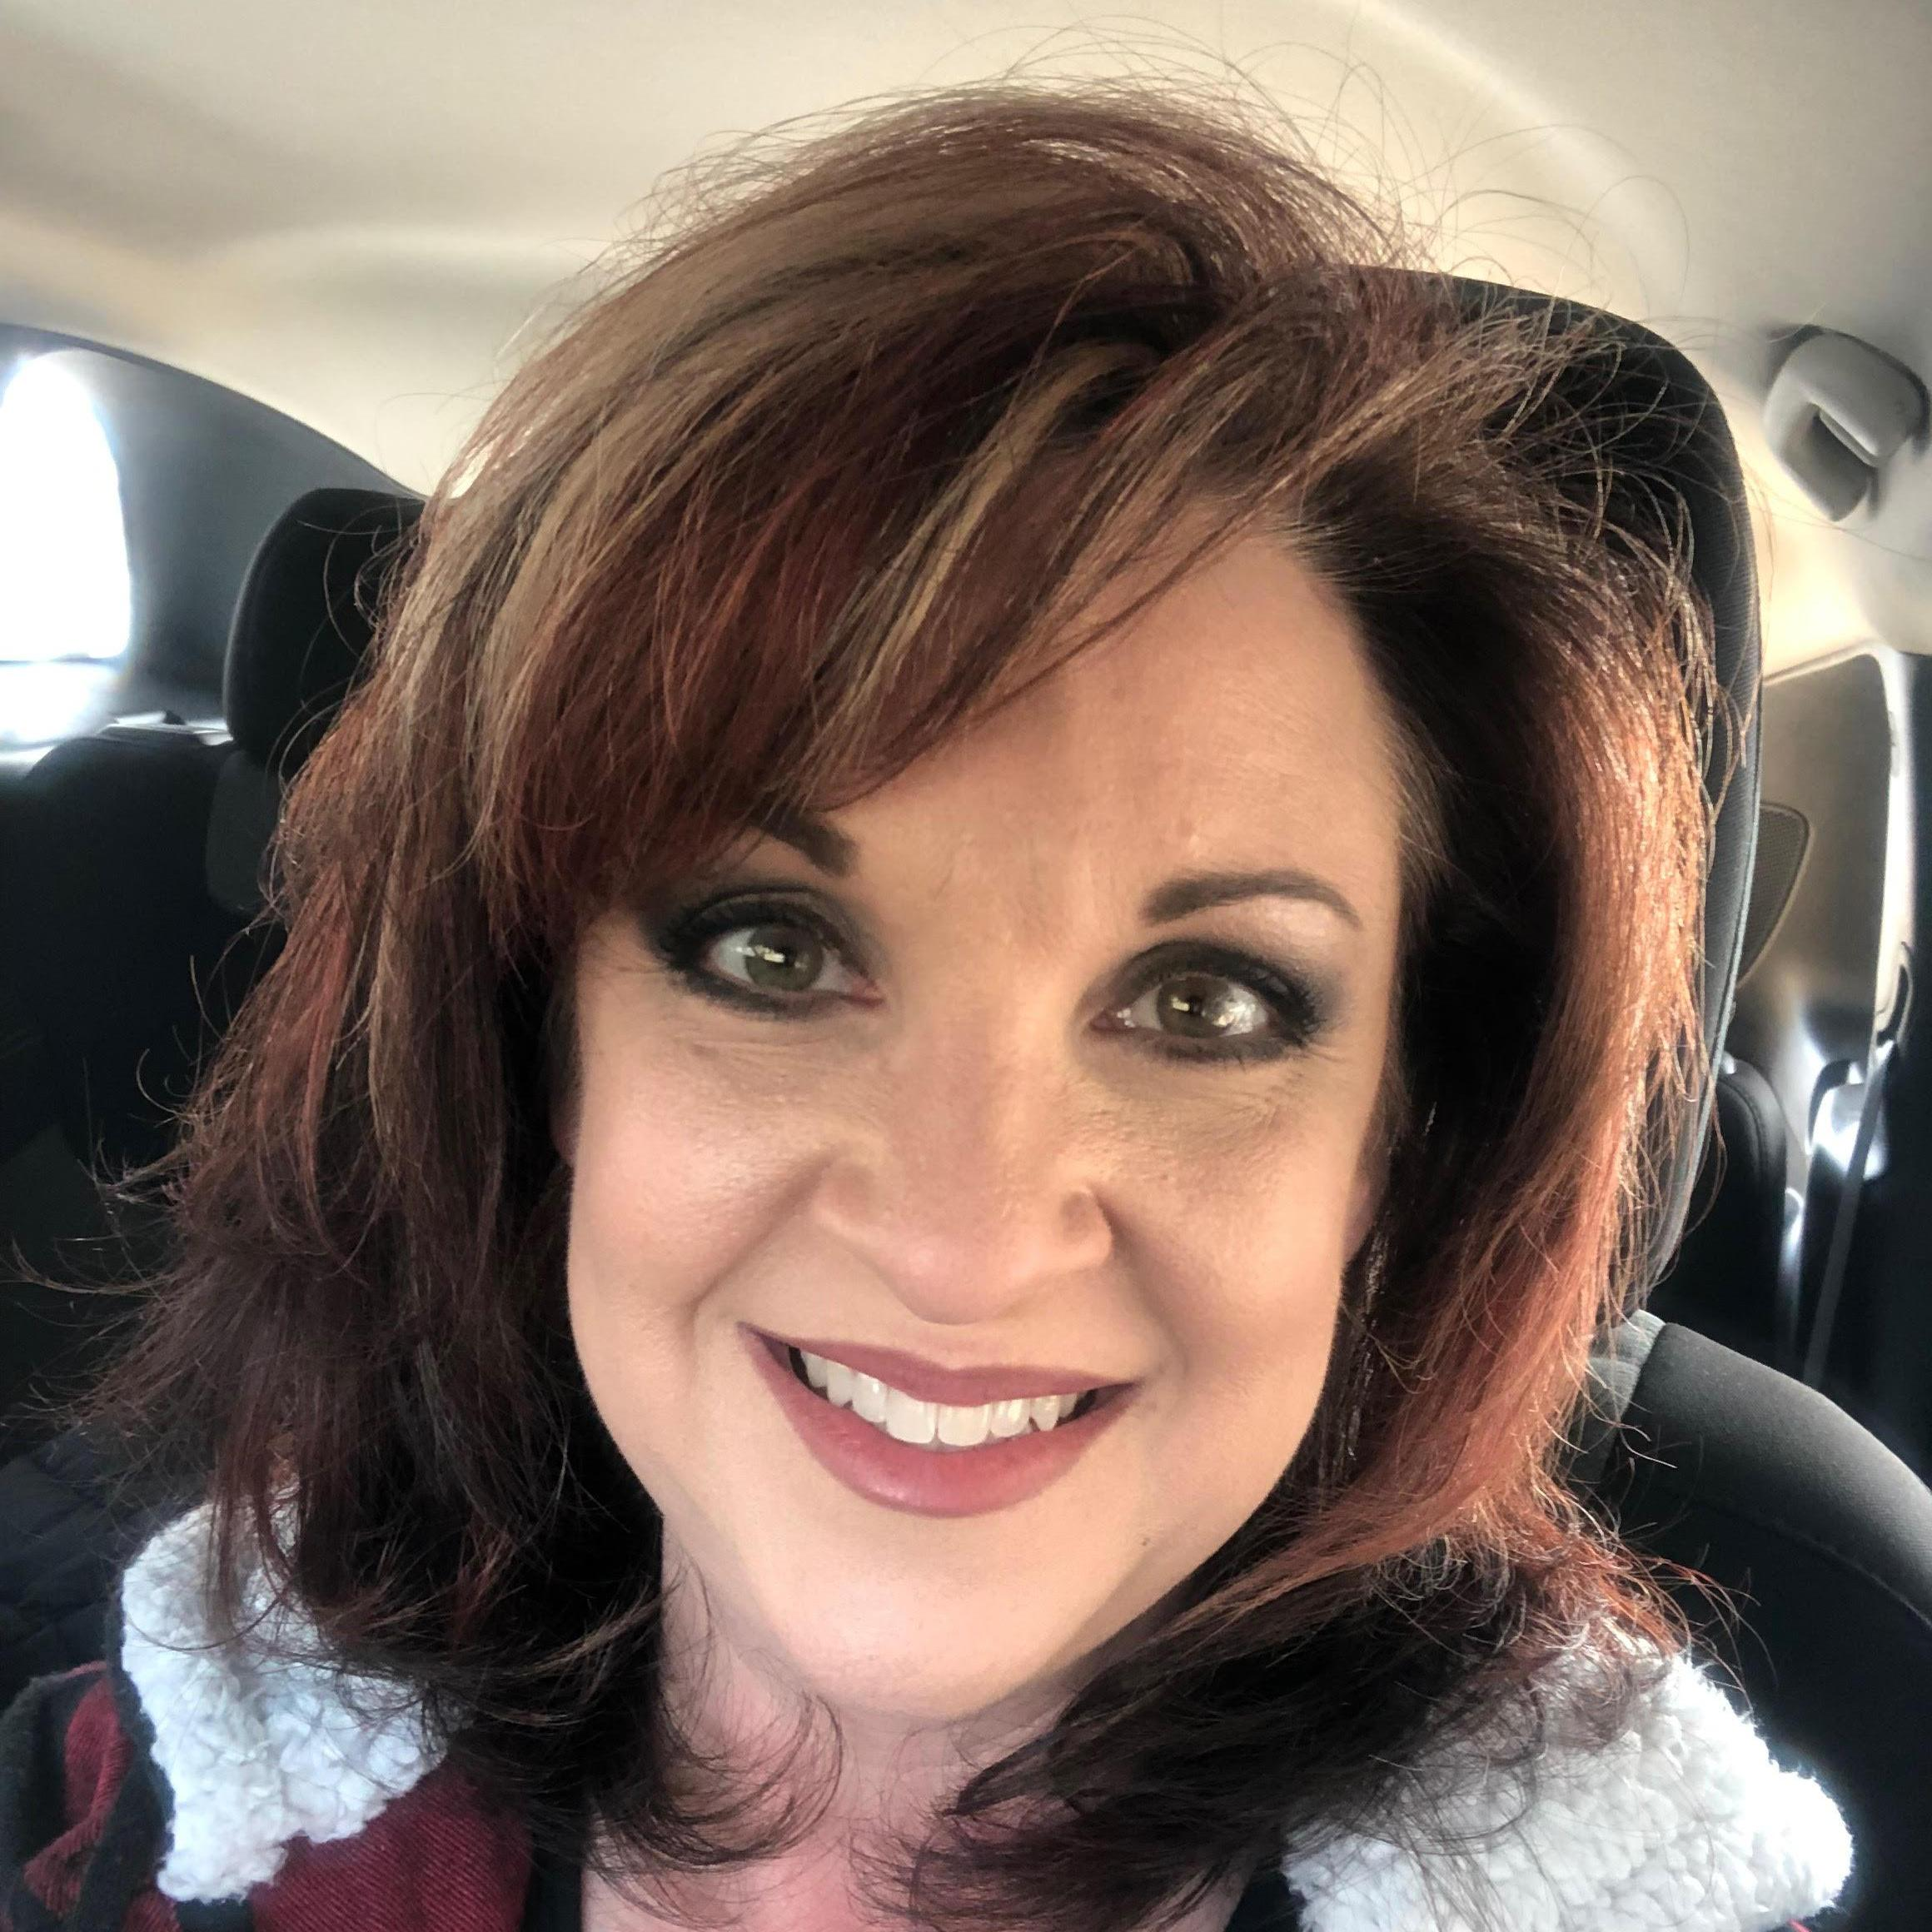 Tonya Livengood's Profile Photo